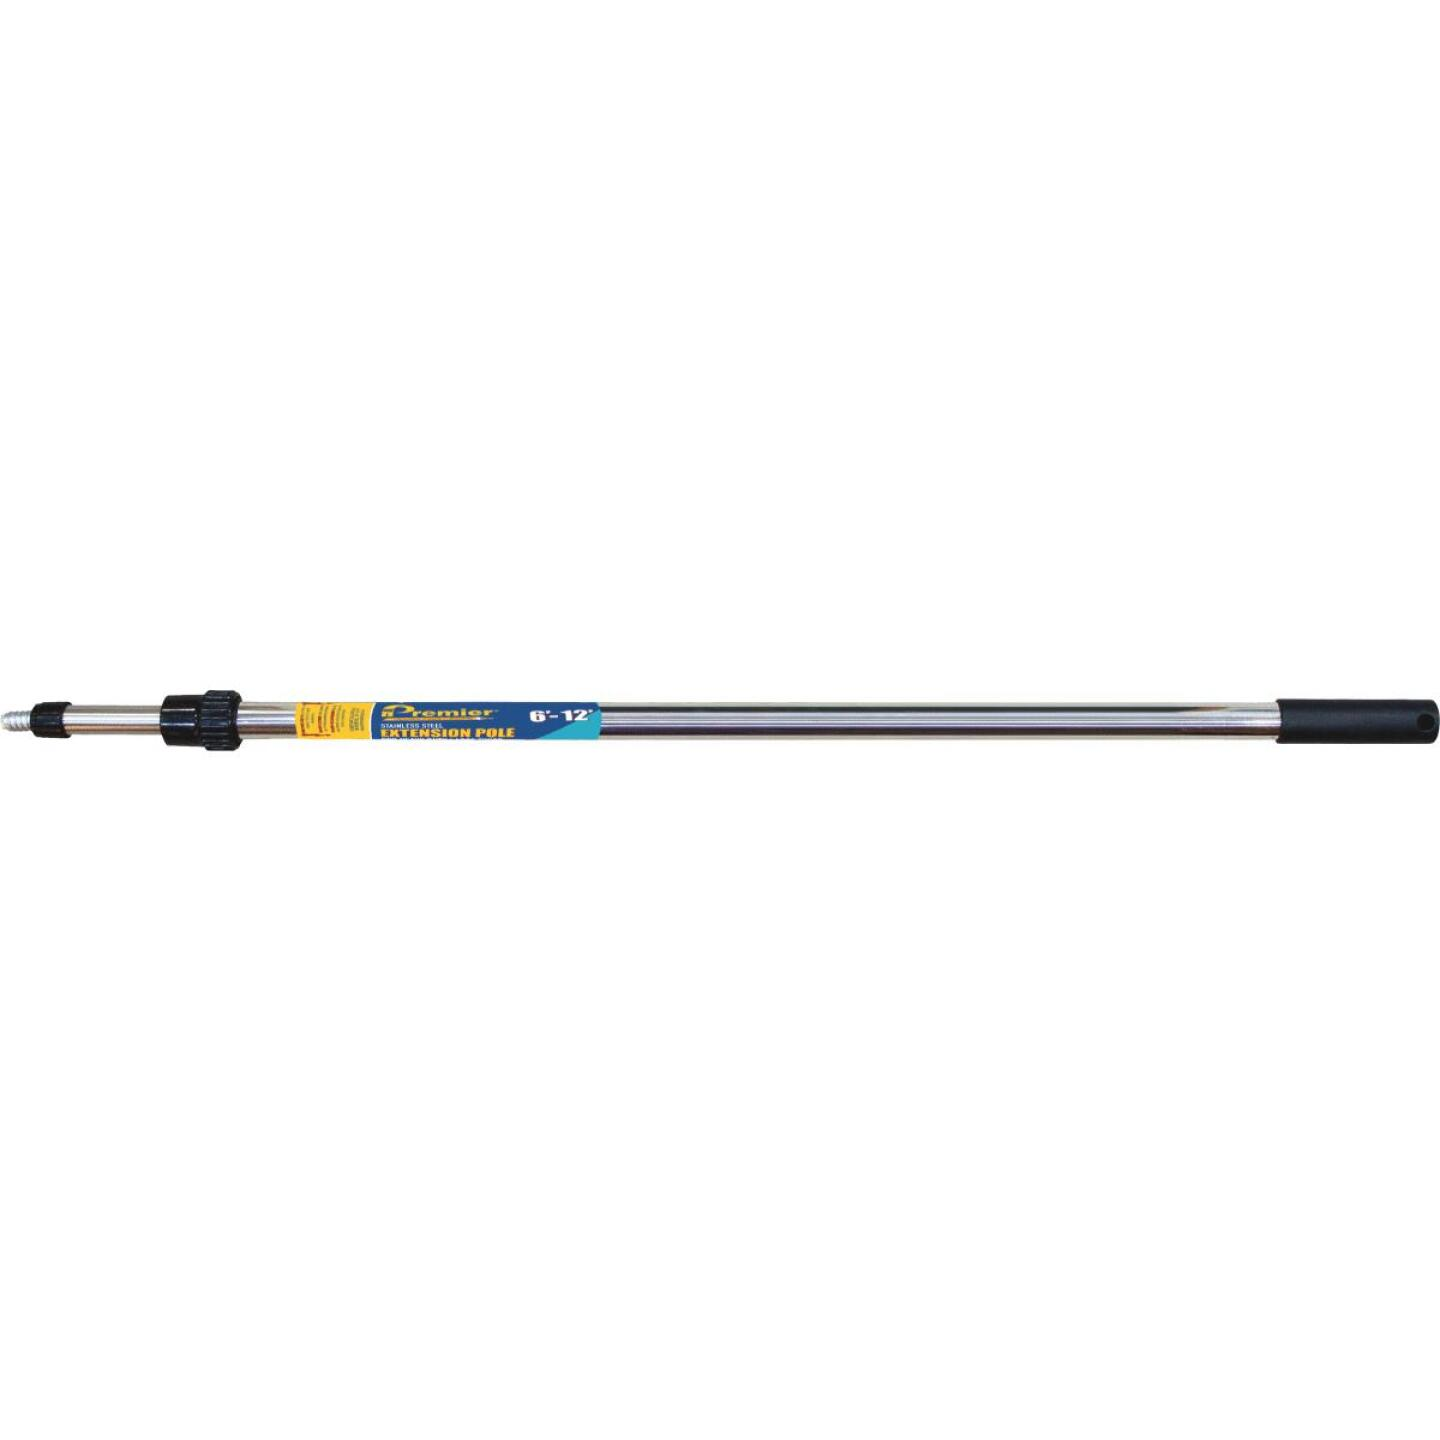 Premier 6 Ft. To 12 Ft. Telescoping Stainless Steel External Twist Extension Pole Image 1